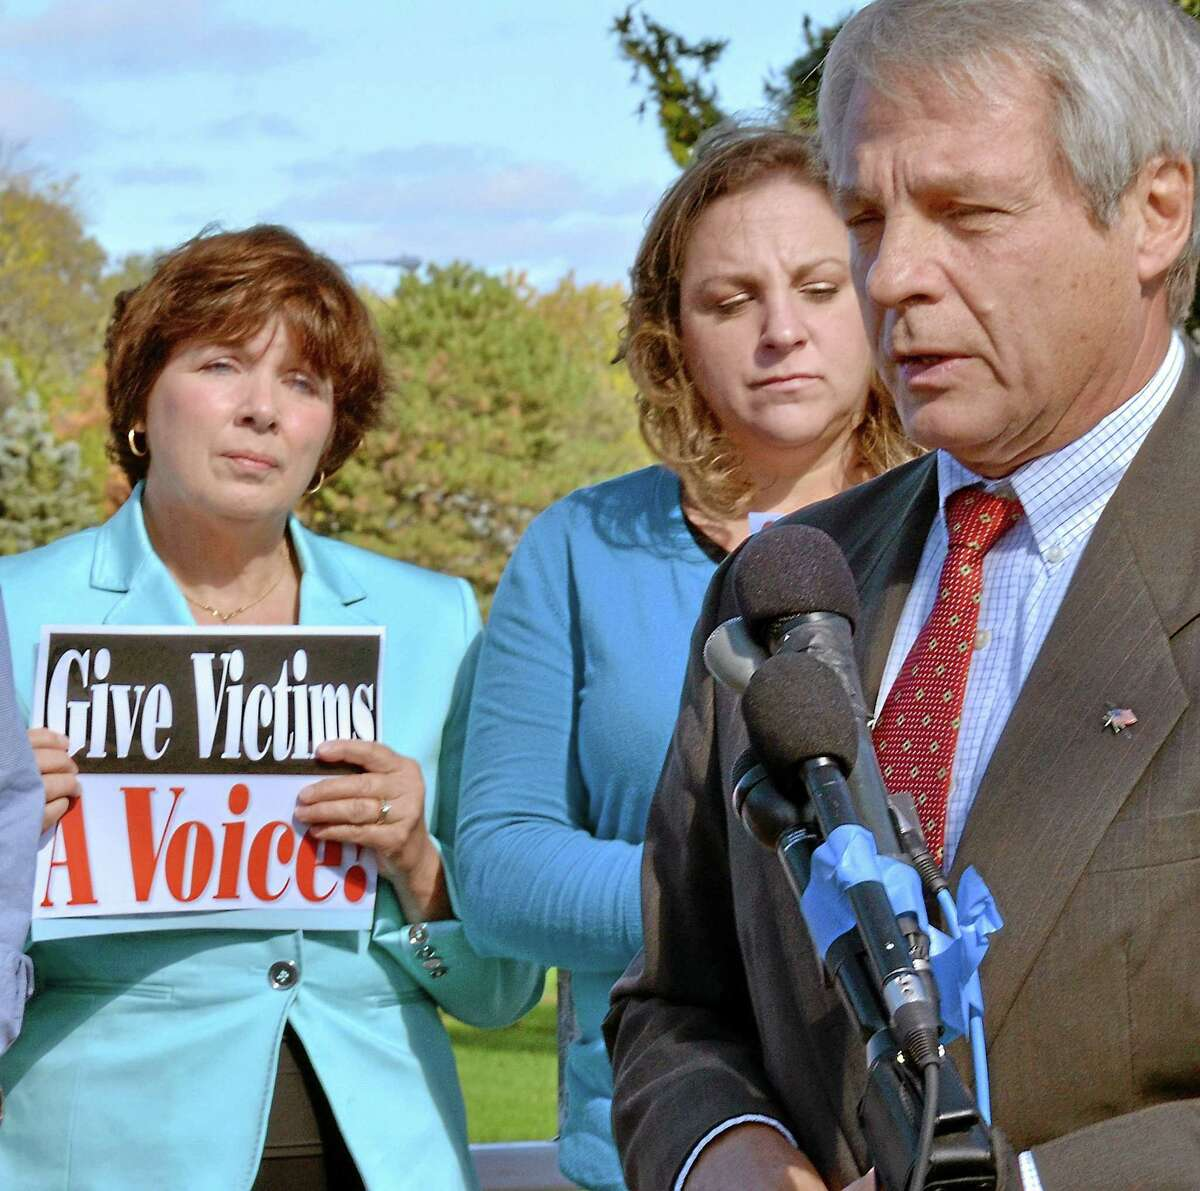 Former state Sen. Len Suzio, R-Meriden, speaks about the need for the state victim advocate.